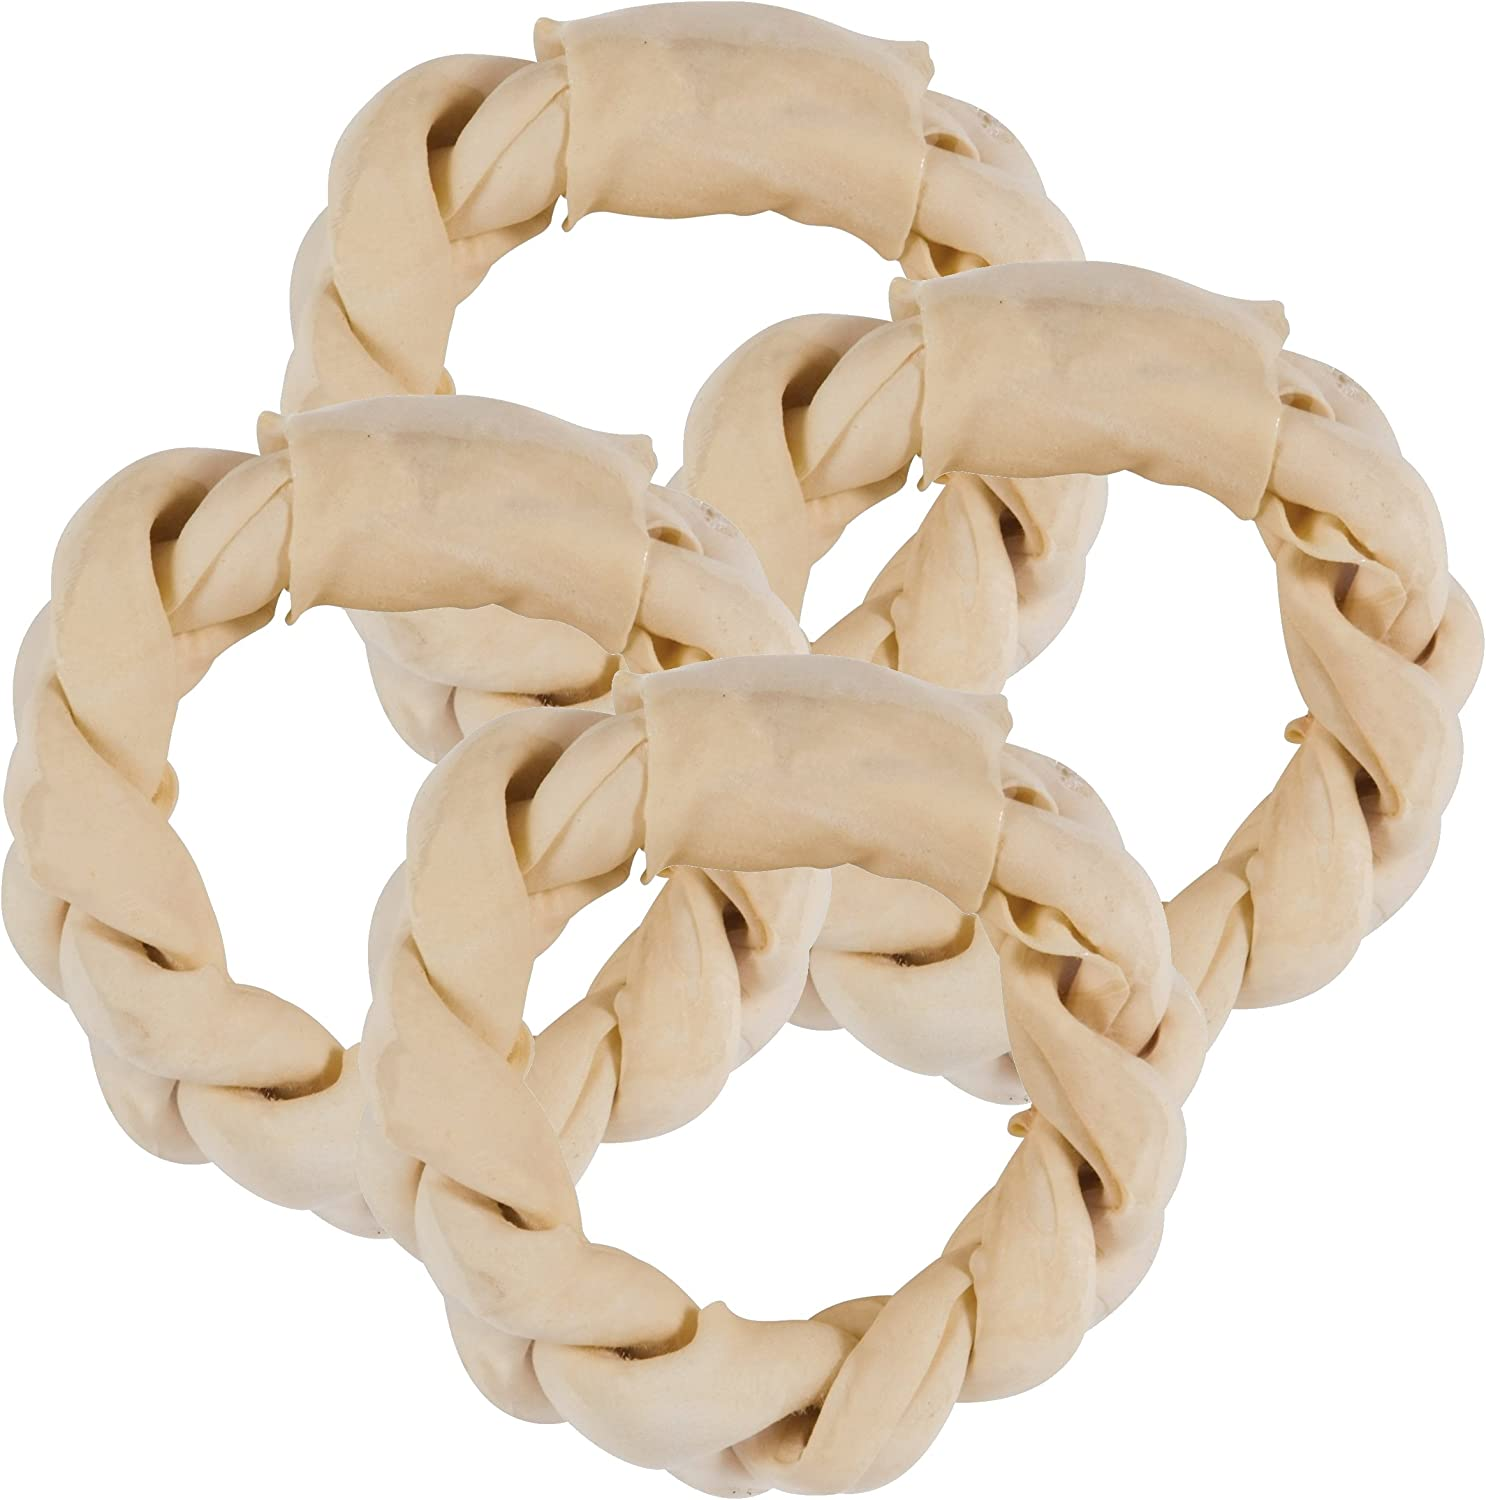 Chunky Chews 8 Braided Rawhide Rings for Large Dogs Natural, 4-Pack